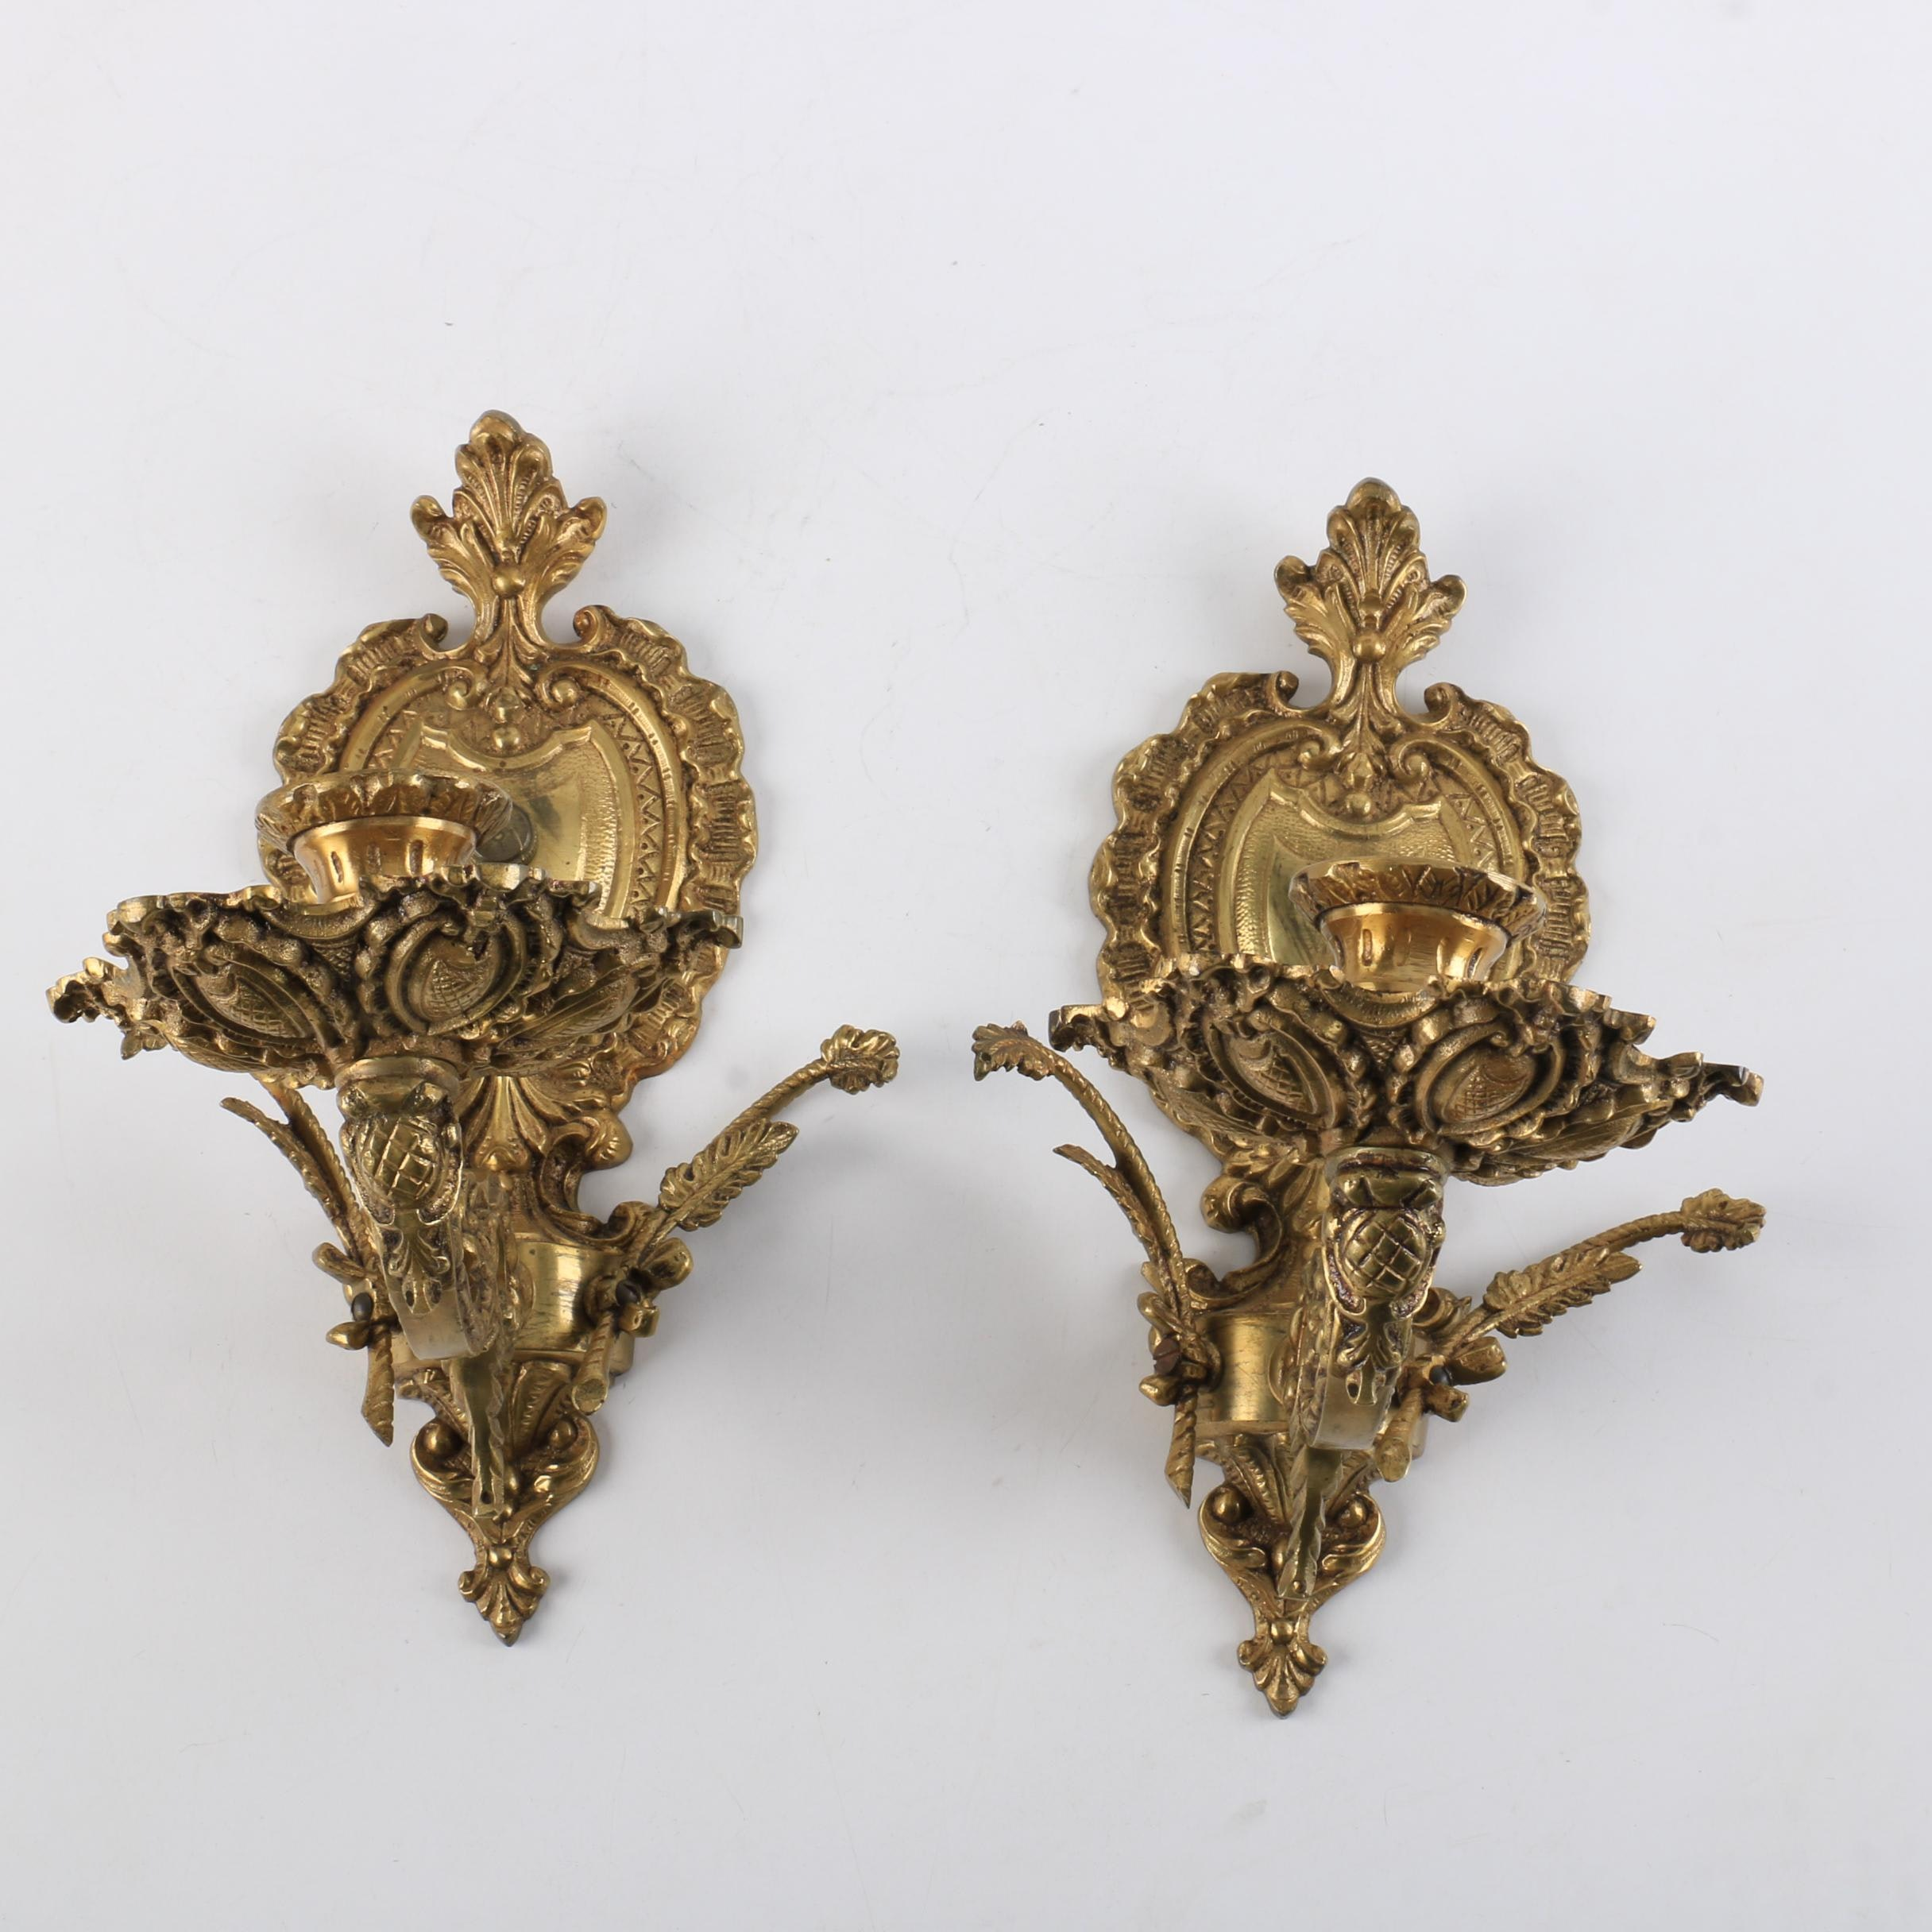 Wall-Hanging Brass Candle Holders